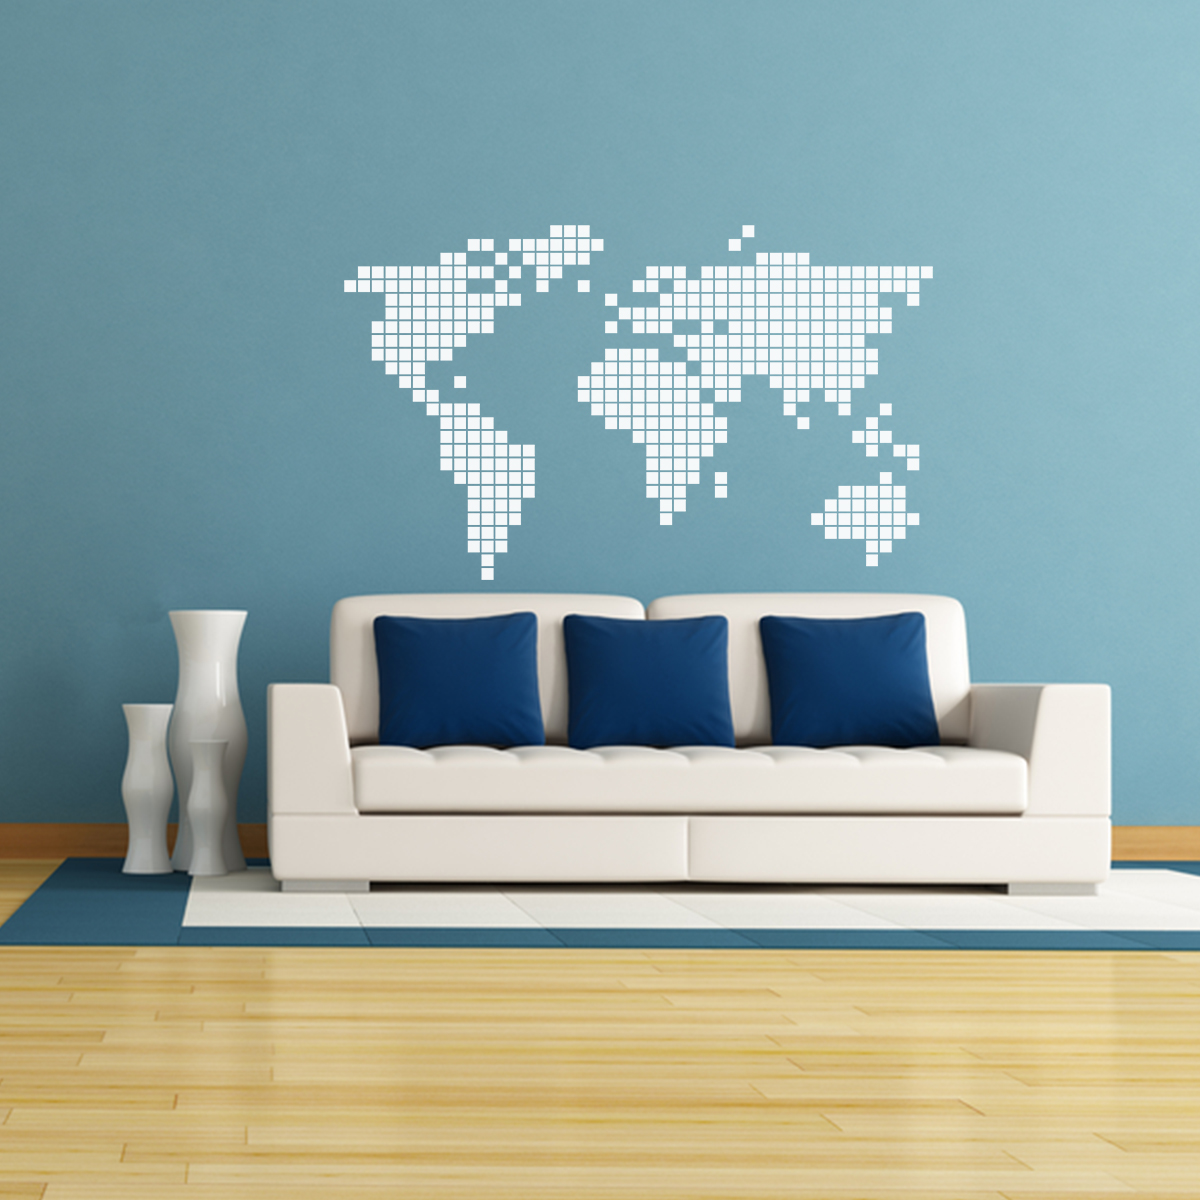 sticker carte du monde en 2d stickers villes et voyages pays et voyages ambiance sticker. Black Bedroom Furniture Sets. Home Design Ideas